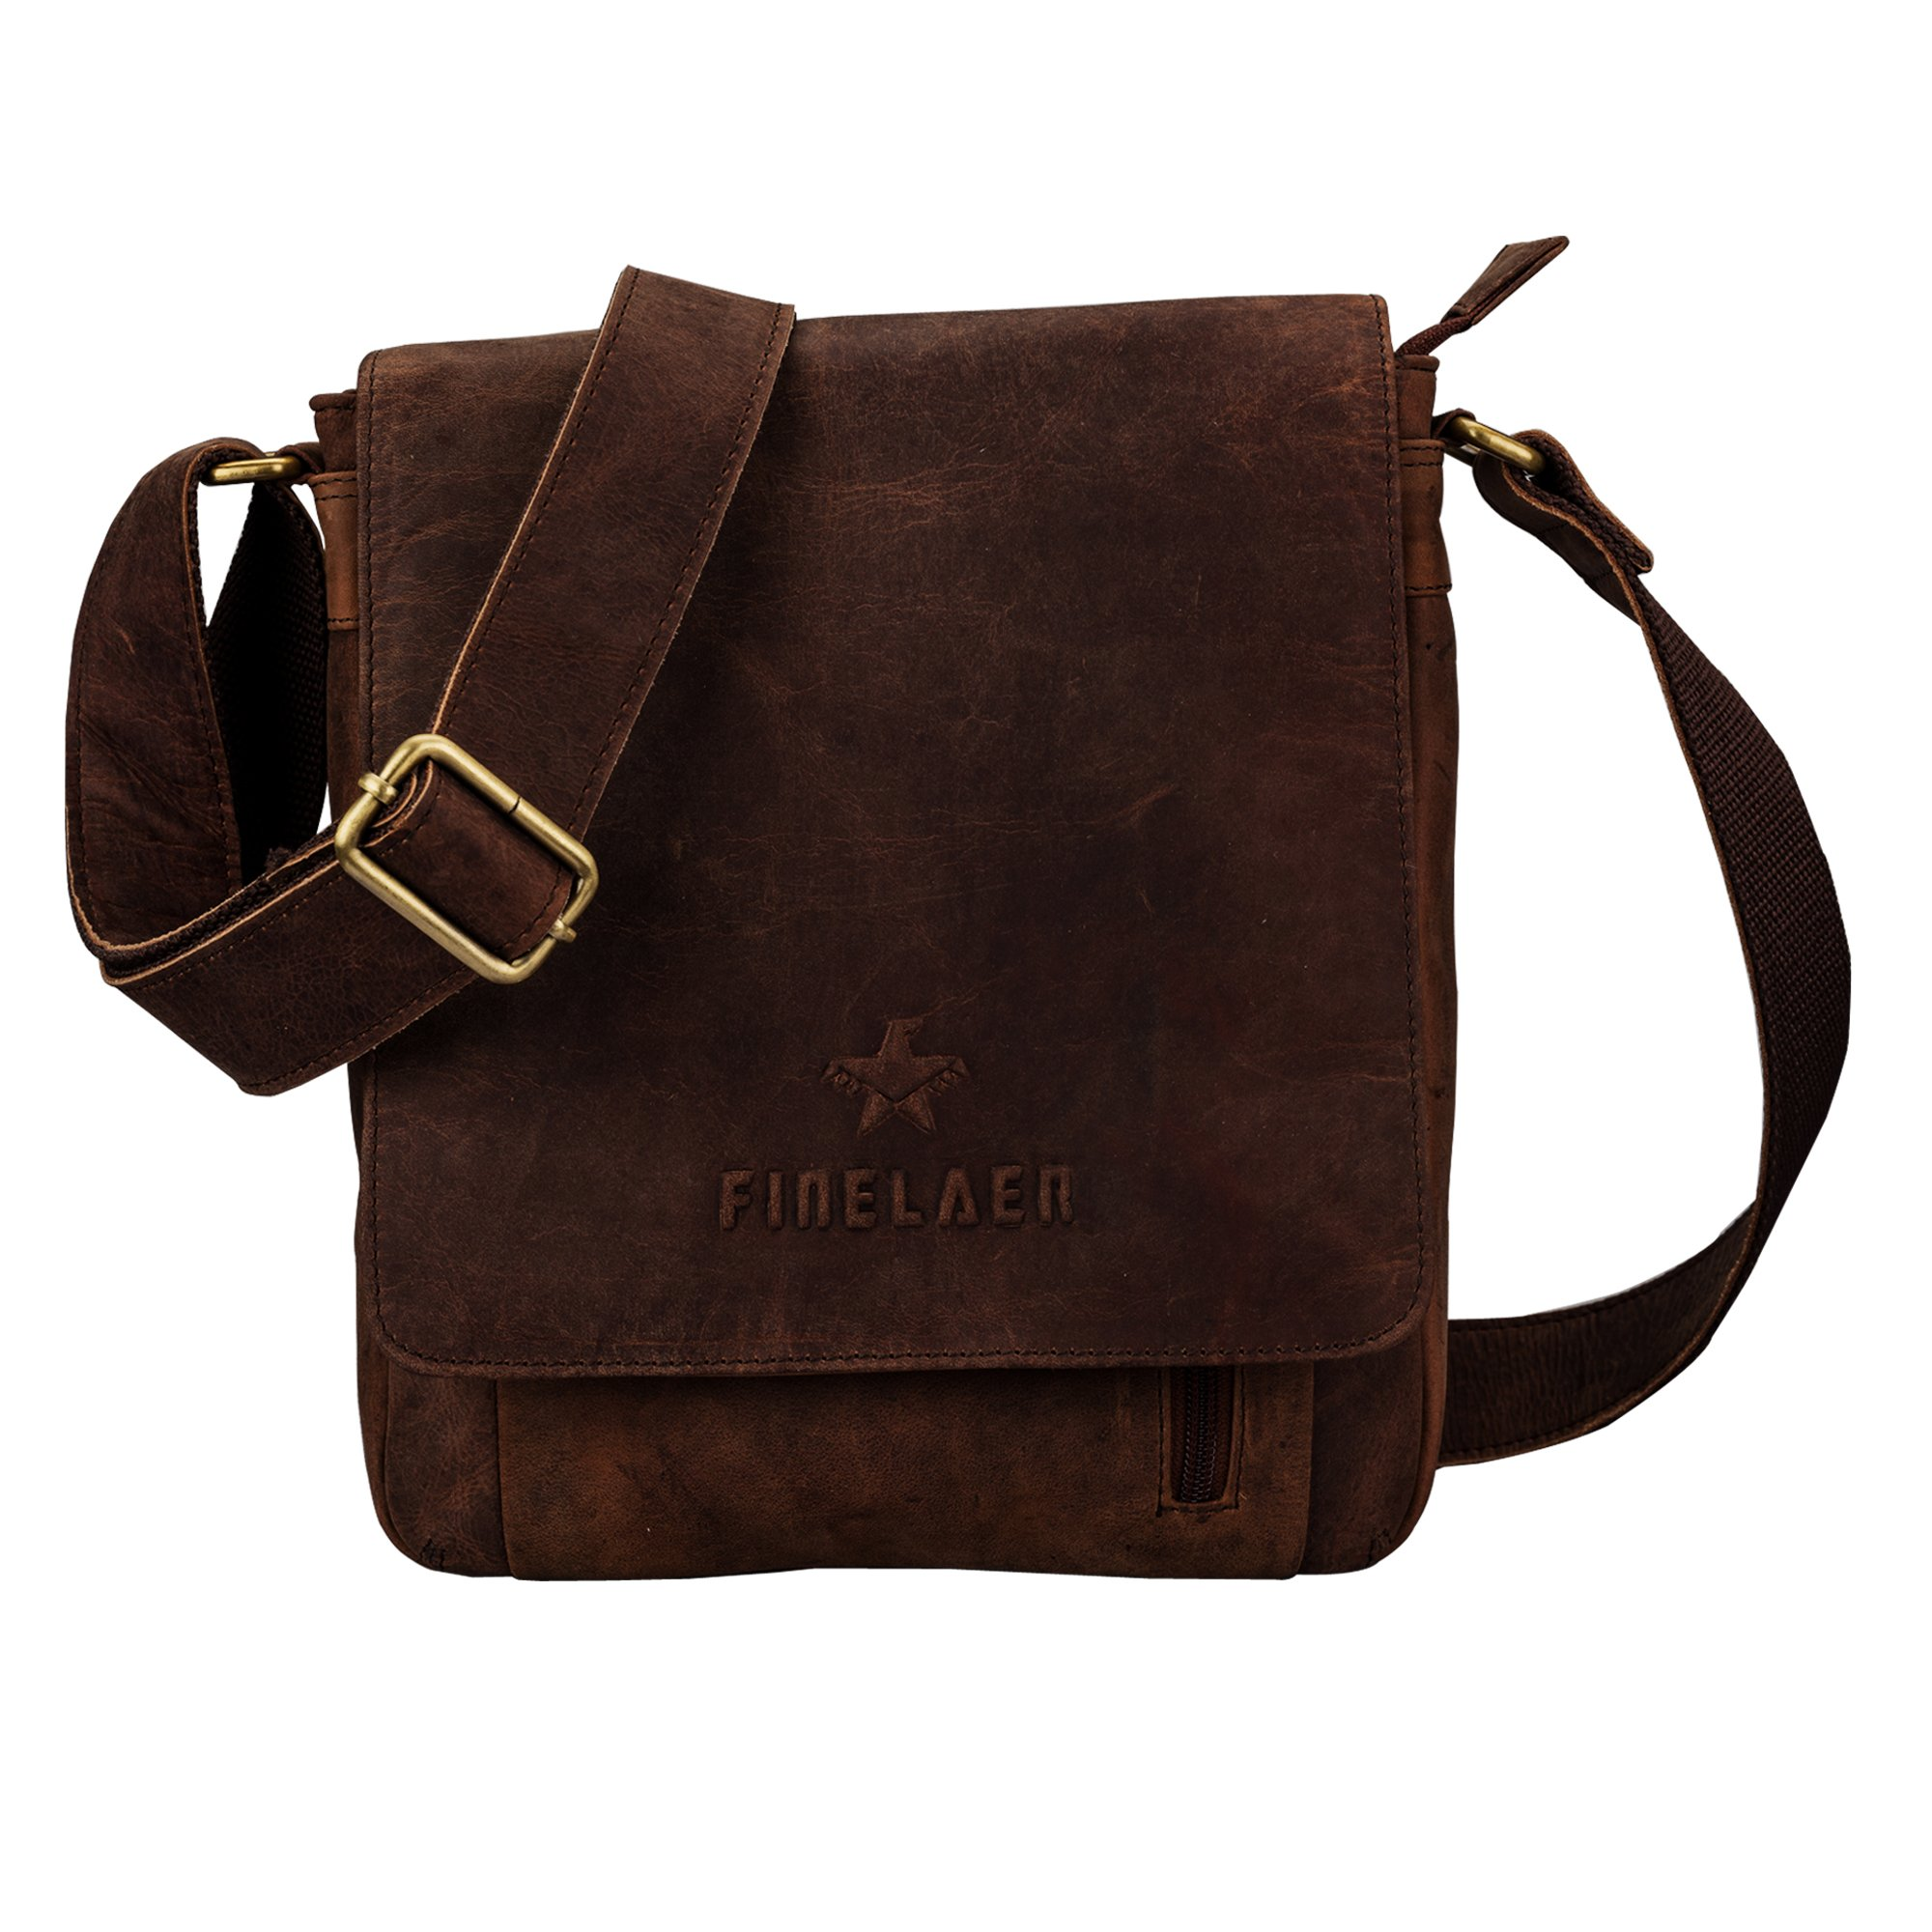 Finelaer Leather Crossbody Bag Purse Tote Shoulder Messenger Bag Bgs for Men Women Brown